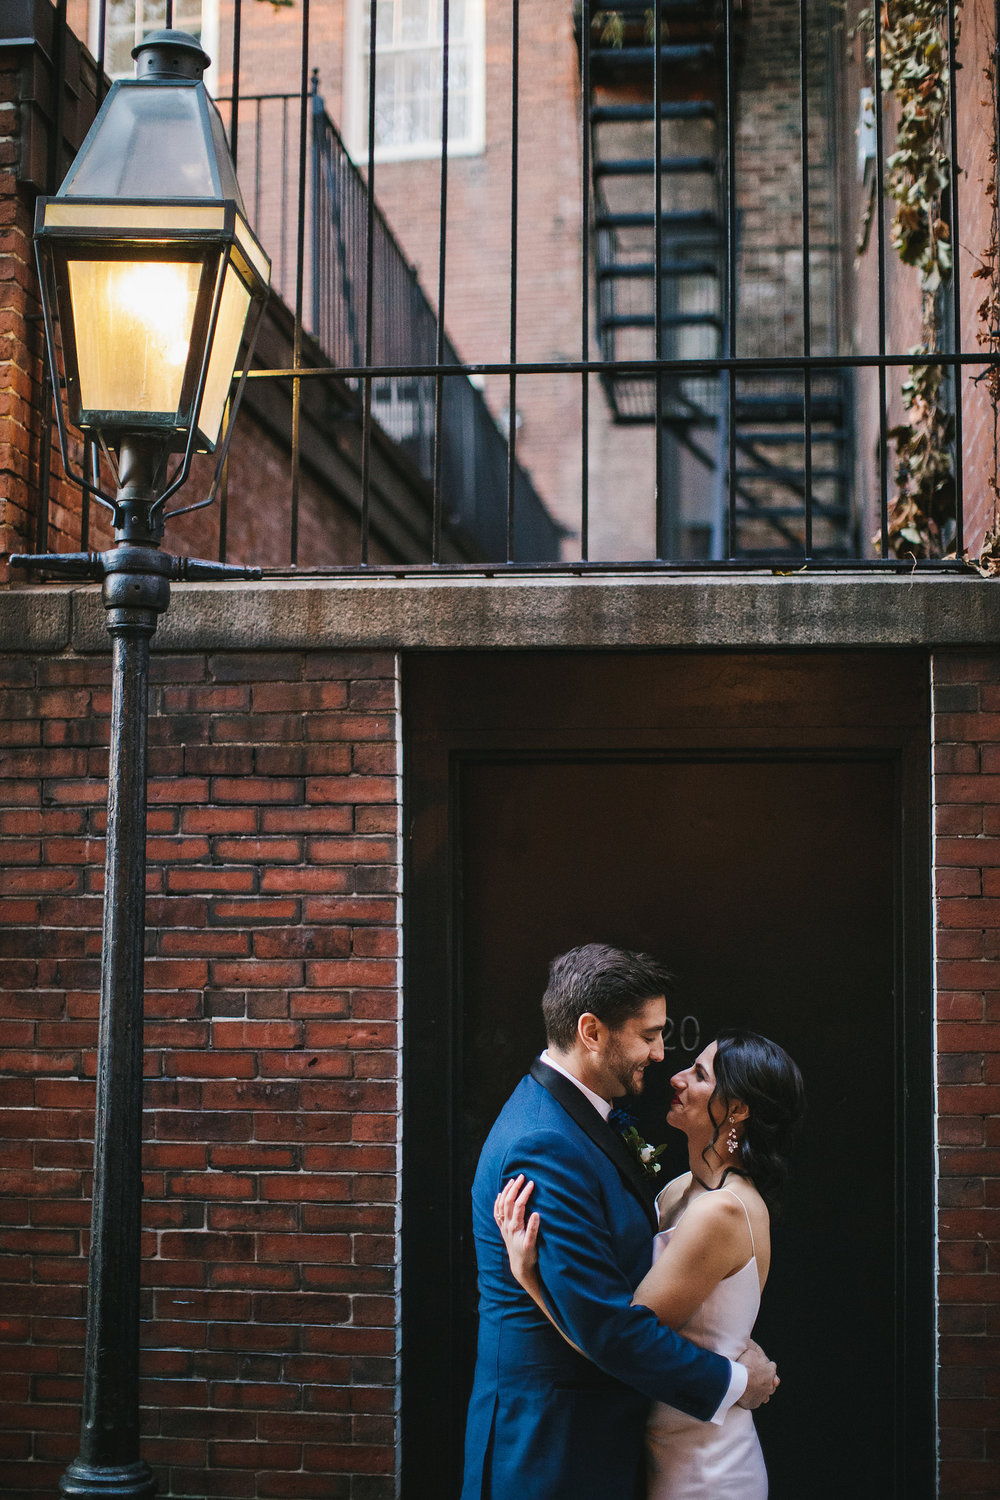 Acorn Street bride and groom portraits by Lindsay Hite Photography.